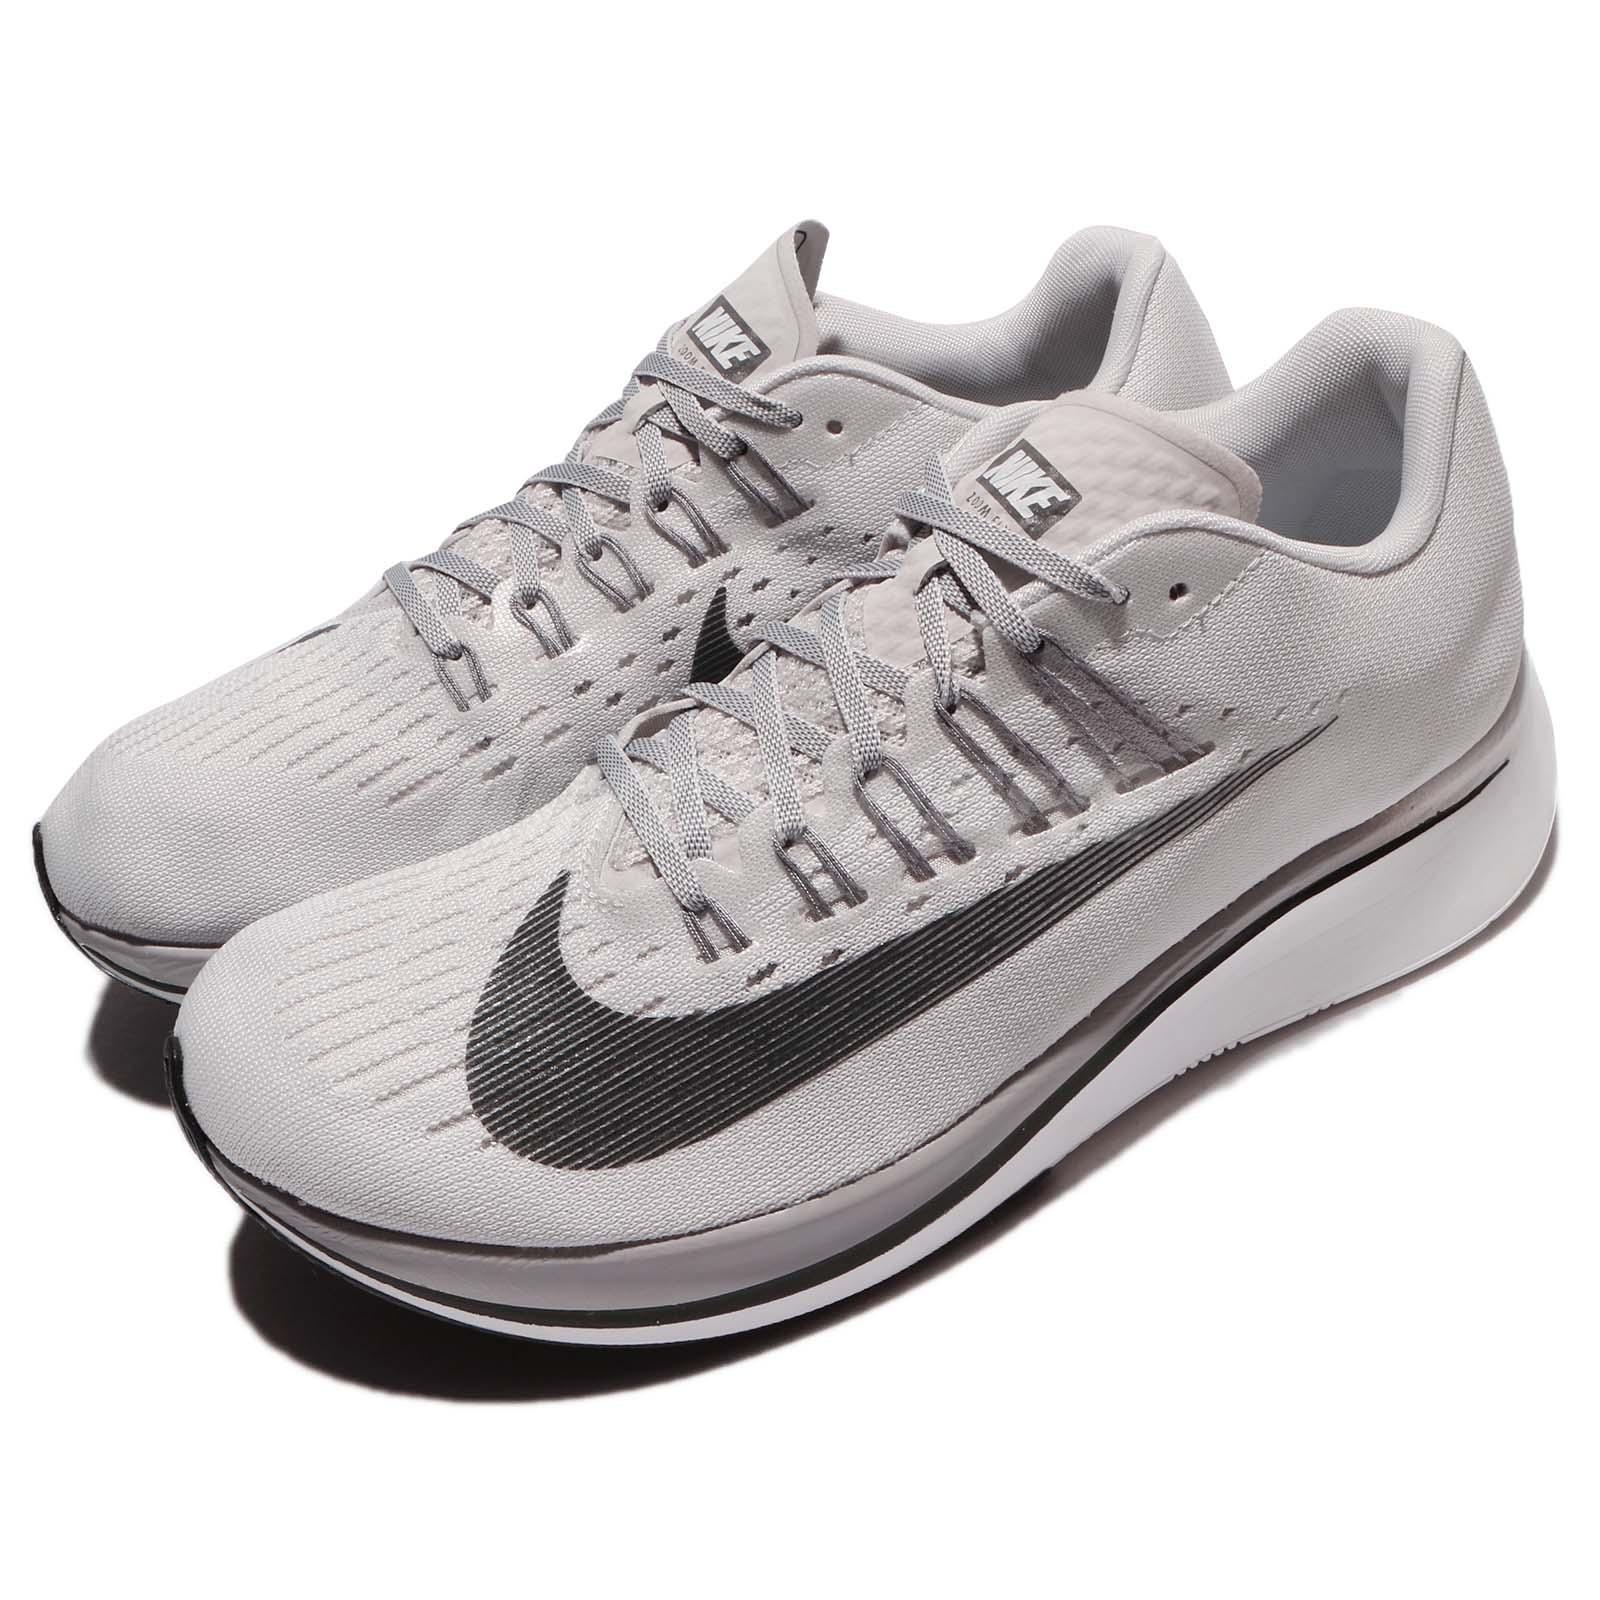 01d53190da69 Details about Nike Zoom Fly Vast Grey Anthracite Men Running Shoes Sneakers  Trainer 880848-002